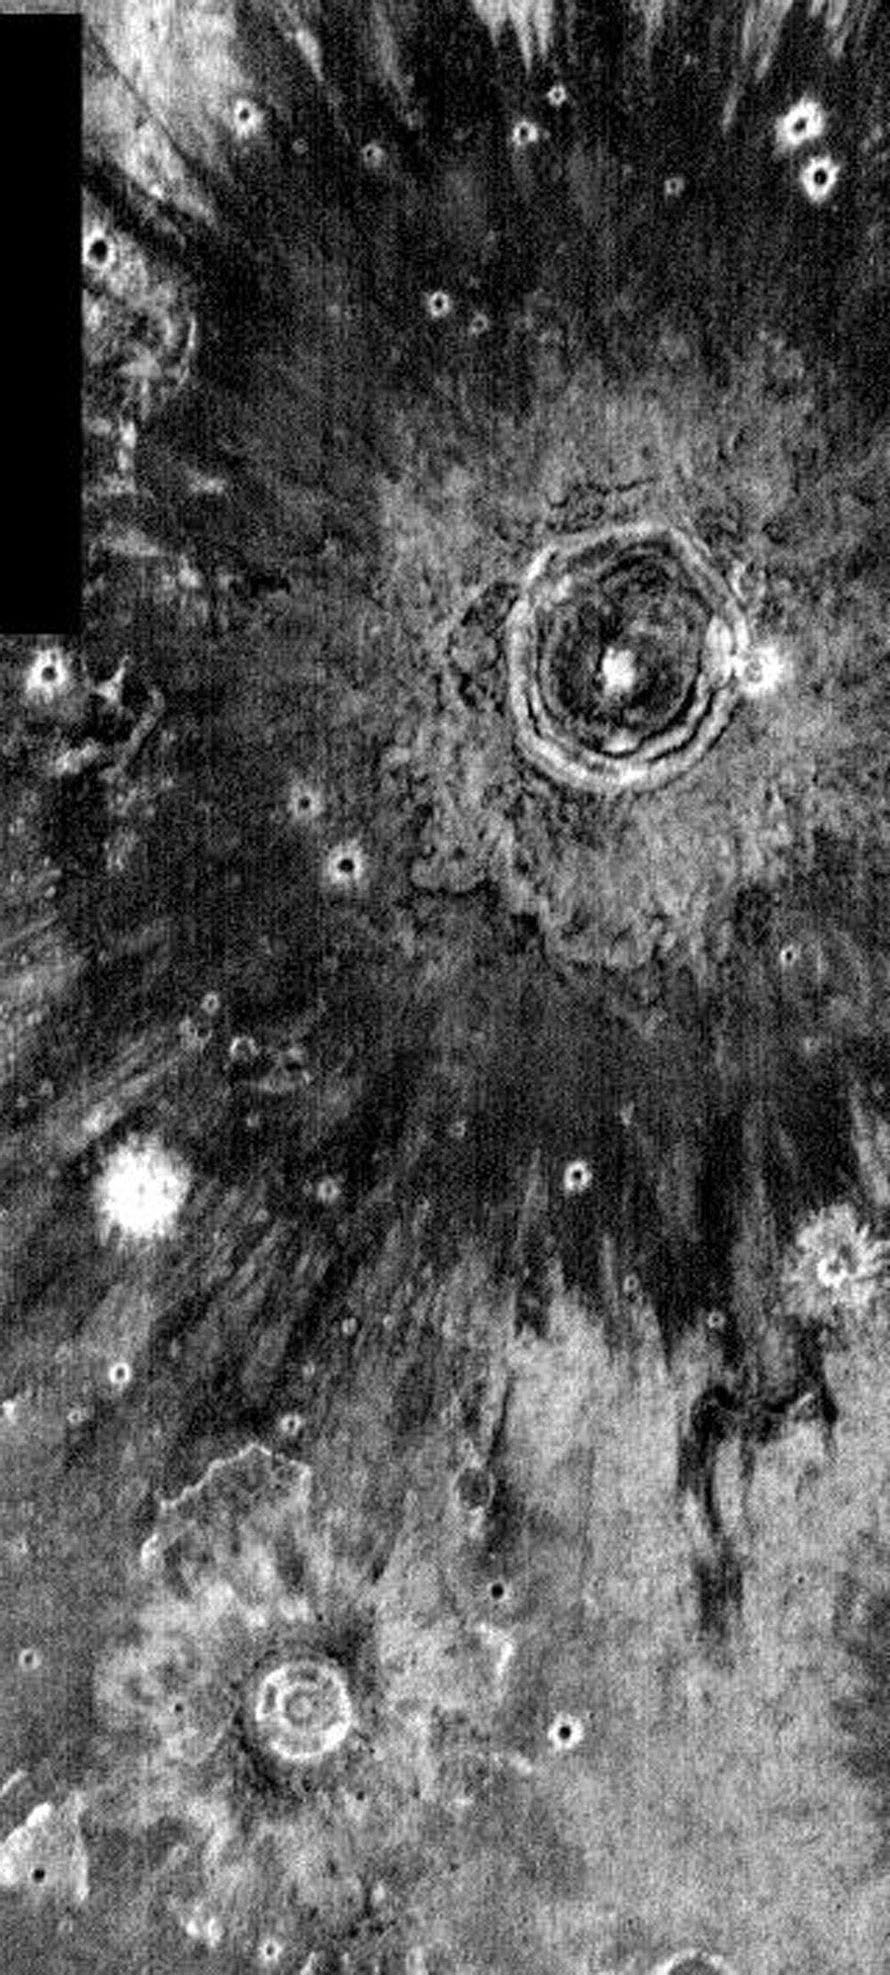 This image, part of an images as art series from NASA's 2001 Mars Odyssey released on Feb 20, 2004 shows crater ejecta on Mars resembling blooming flowers.